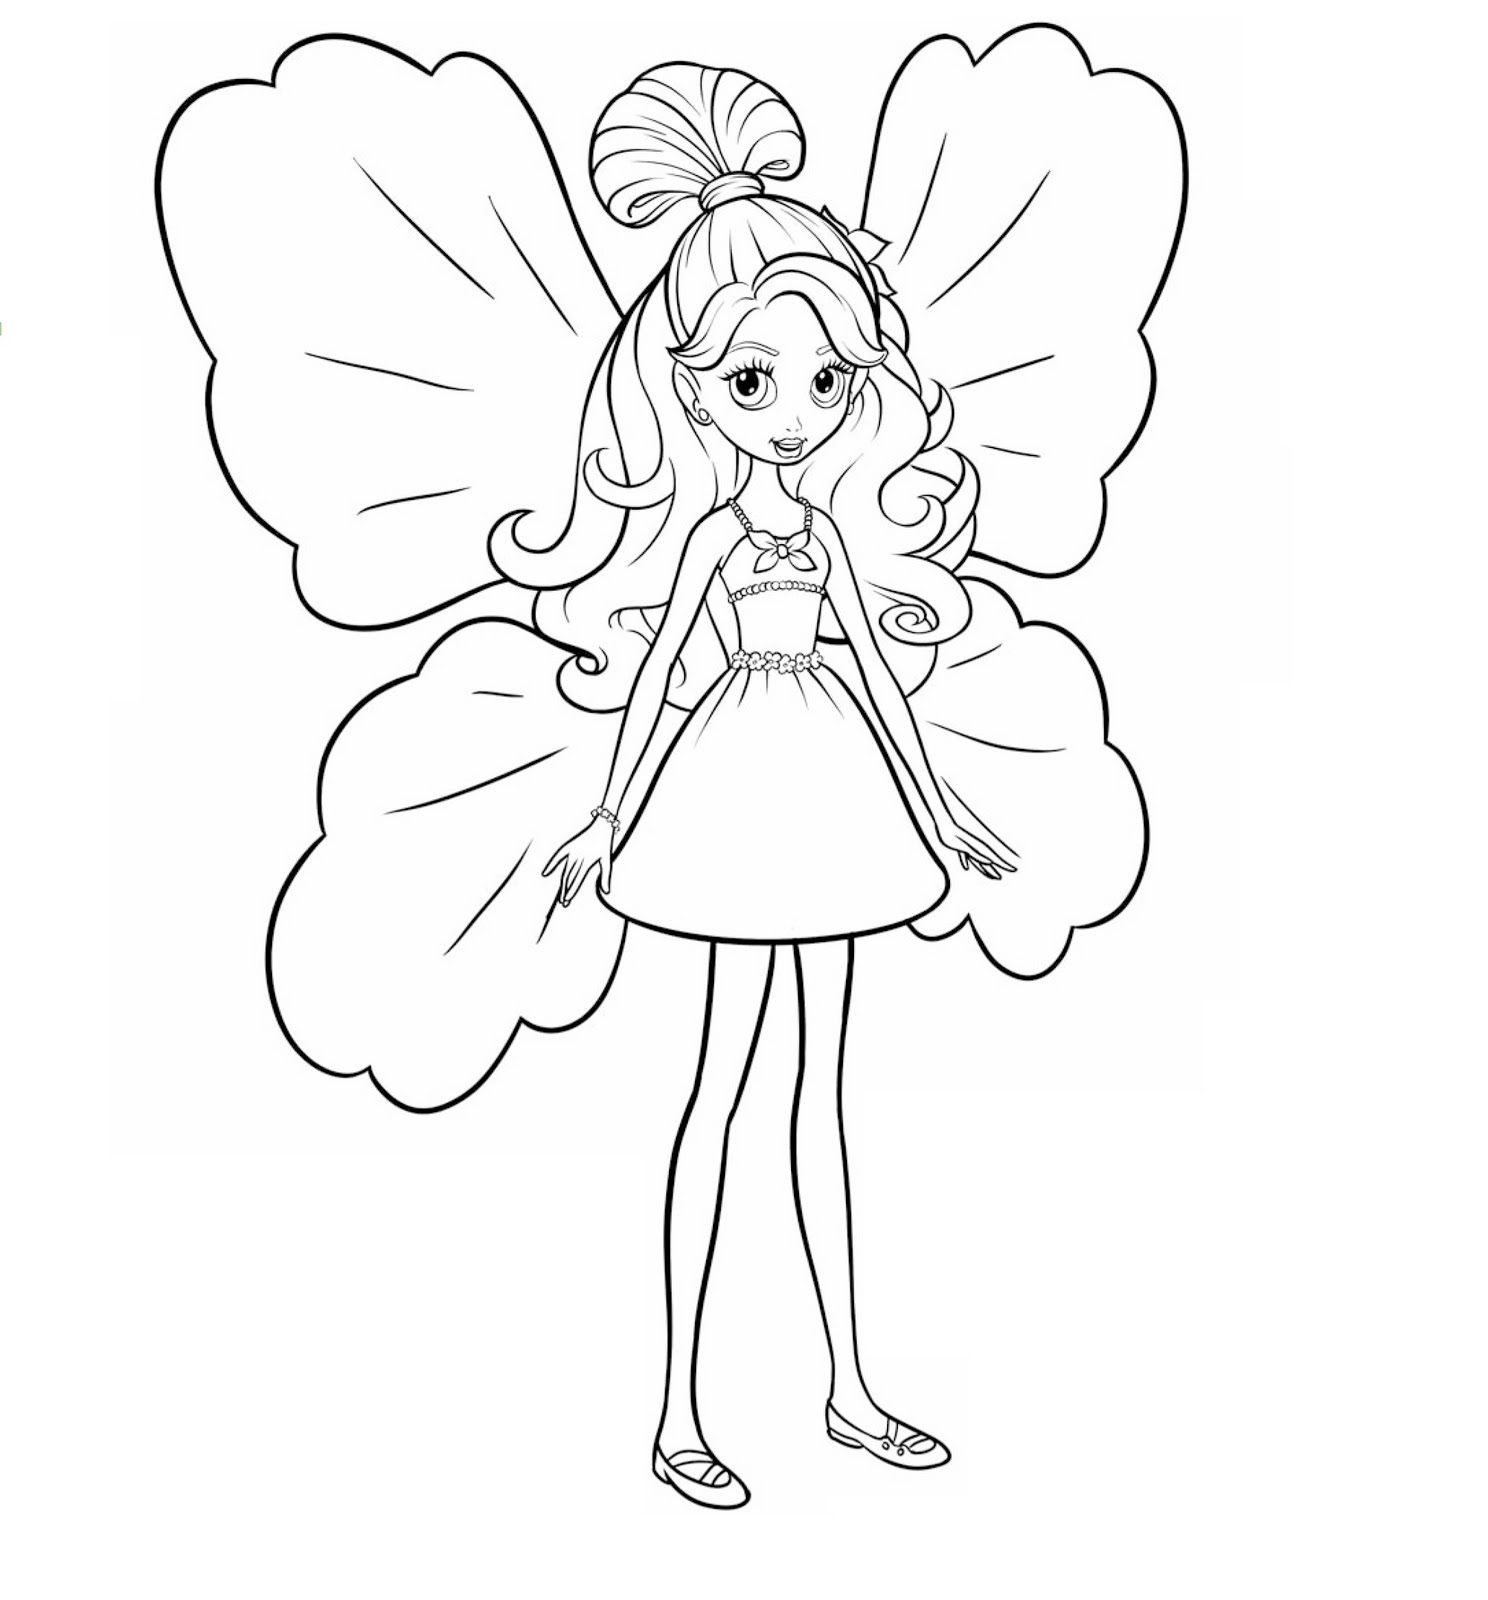 pita ten coloring pages - photo#21